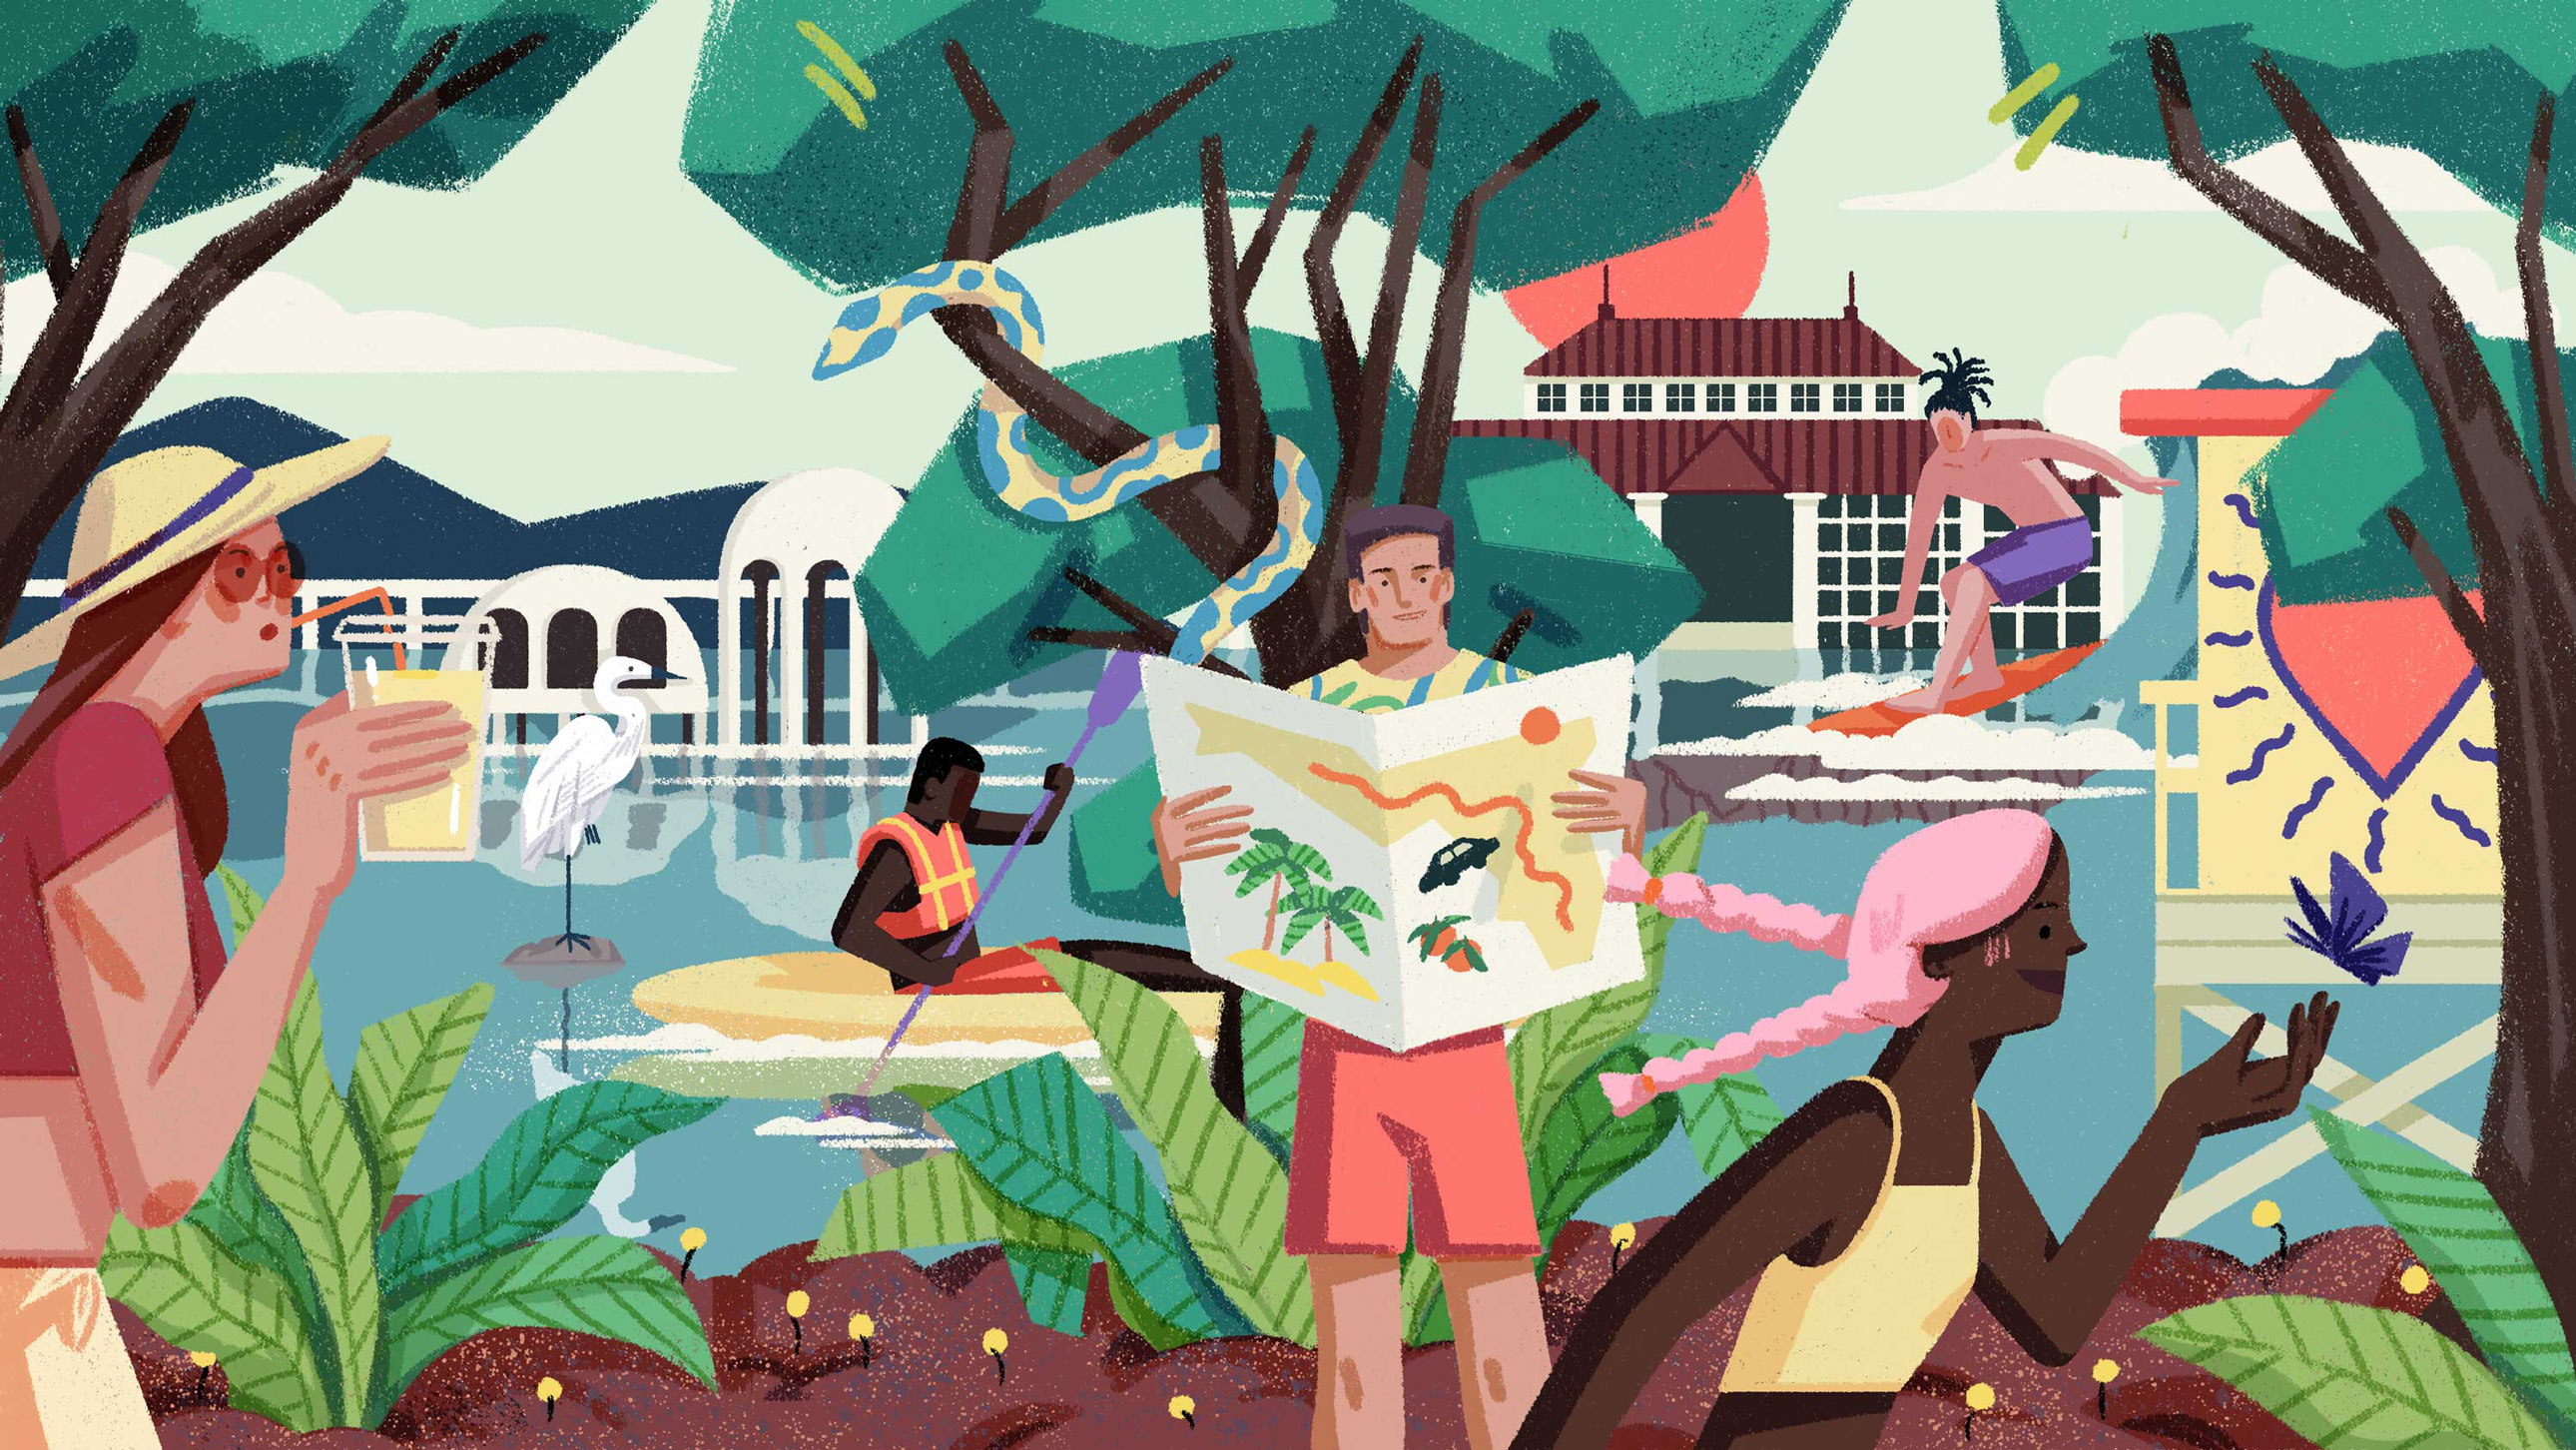 An illustration of several places and things to do in south Florida: a man kayaks, a girl catches a butterfly, another person surfs in the background.